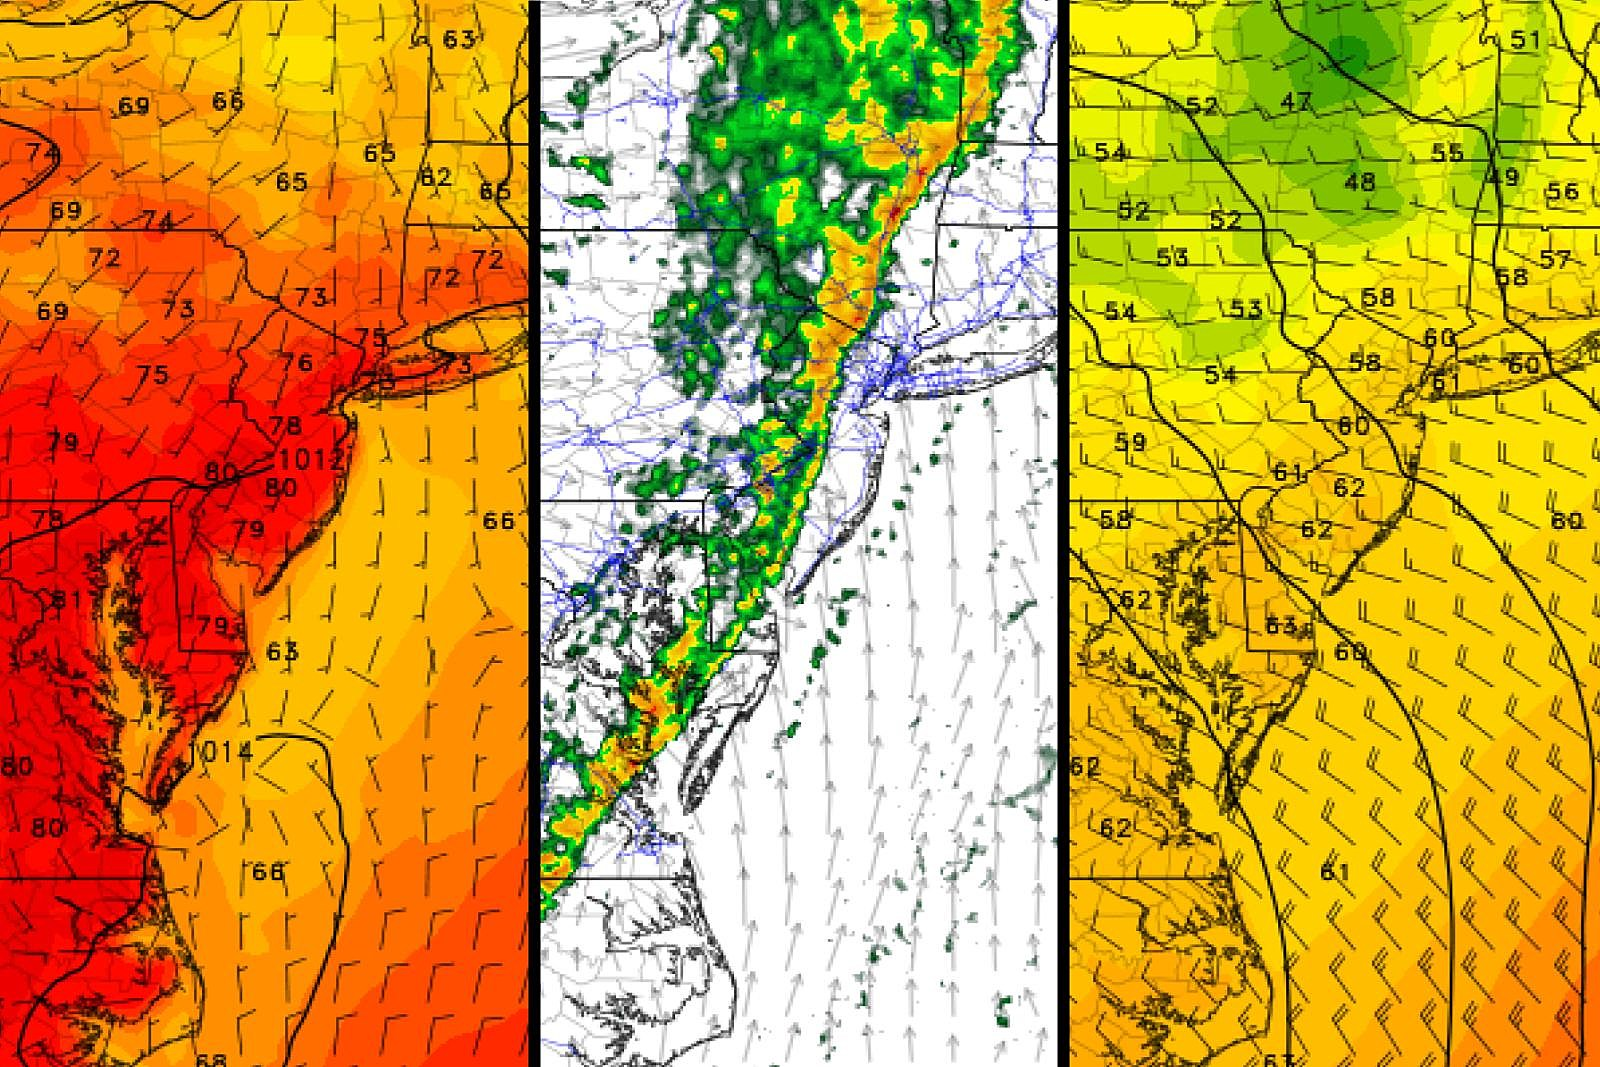 NJ weekend weather: Warm start, stormy middle, much cooler finish